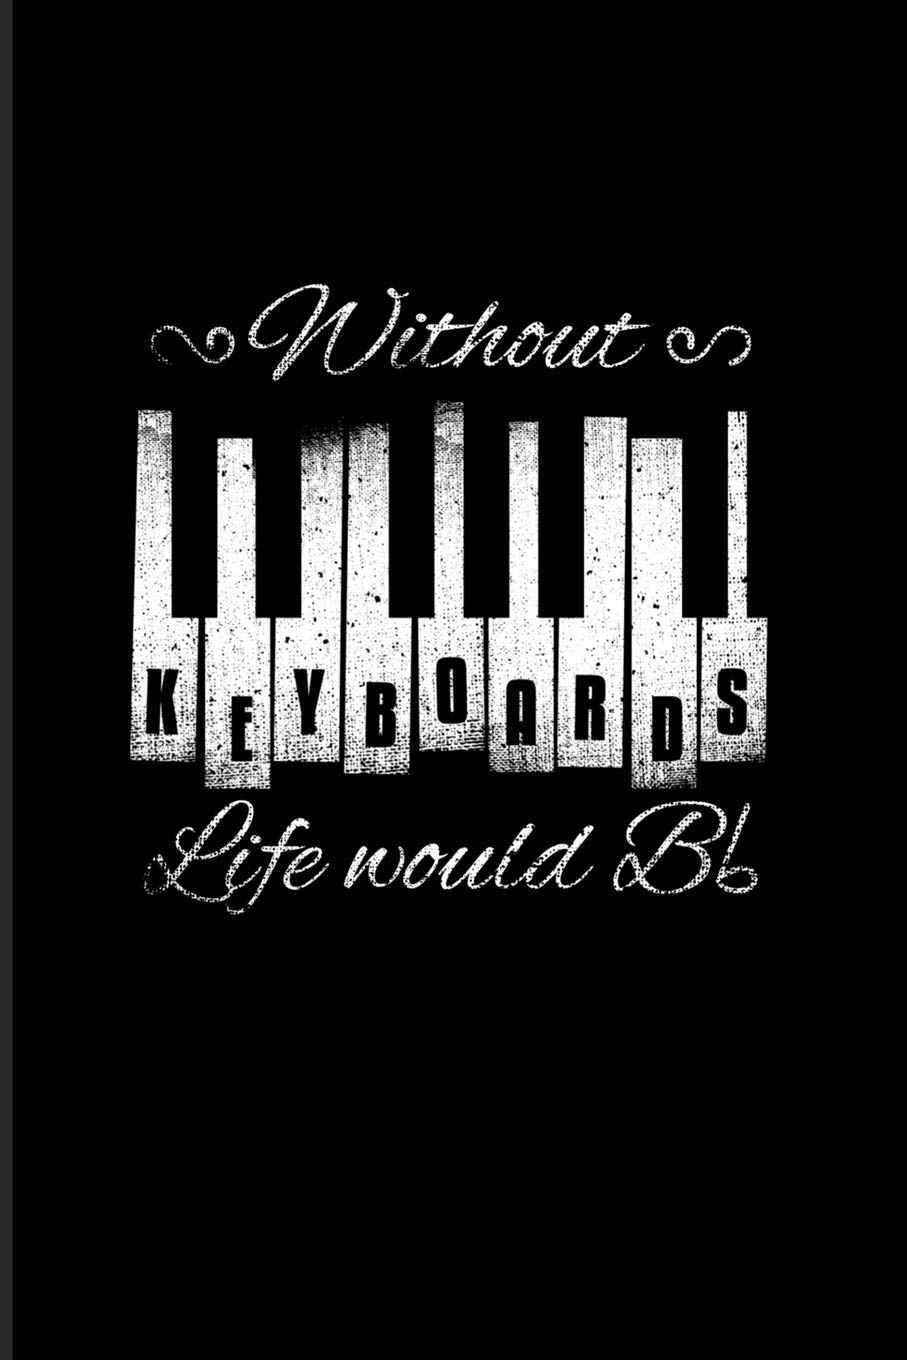 Without Keyboards Life Would Bb Musical Quotes About Life 2020 Planner Weekly Monthly Pocket Calendar 6x9 Softcover Organizer For Keyboardist Keyboard Player Fans Paperbacks Yeoys 9781697545784 Amazon Com Books